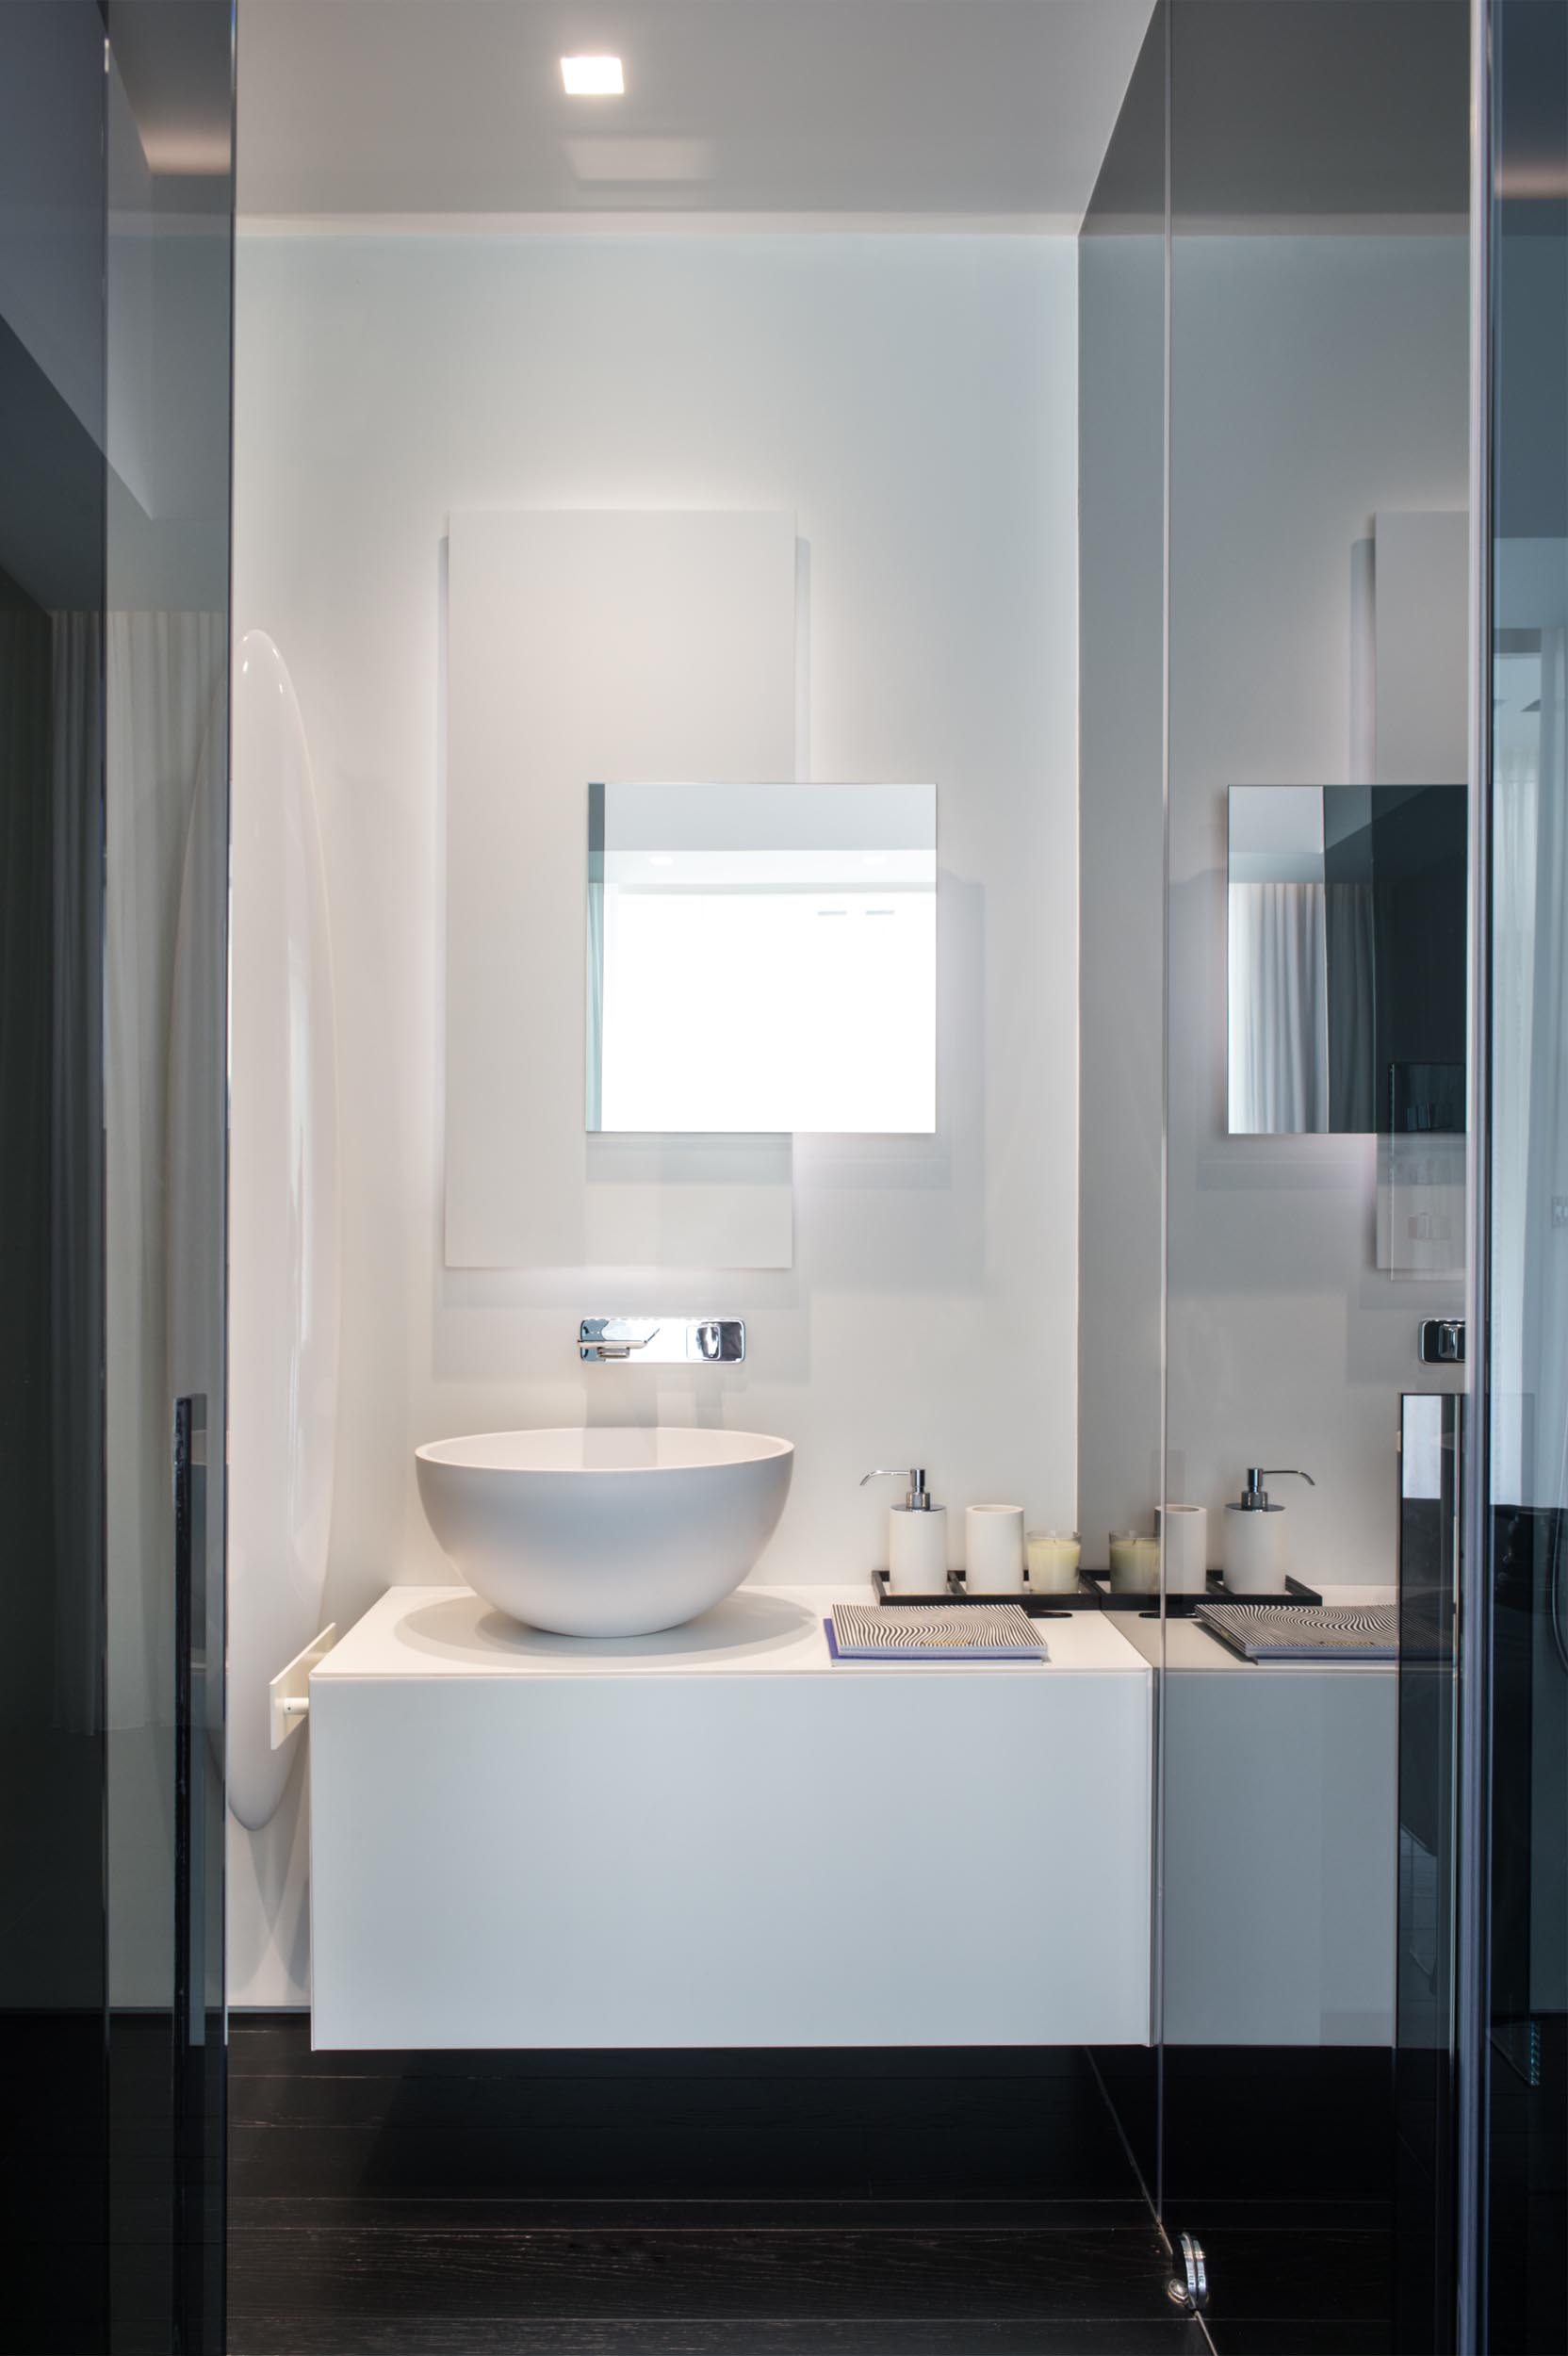 A modern bathroom with a white vanity and backlit mirror, and contrasting black floor.